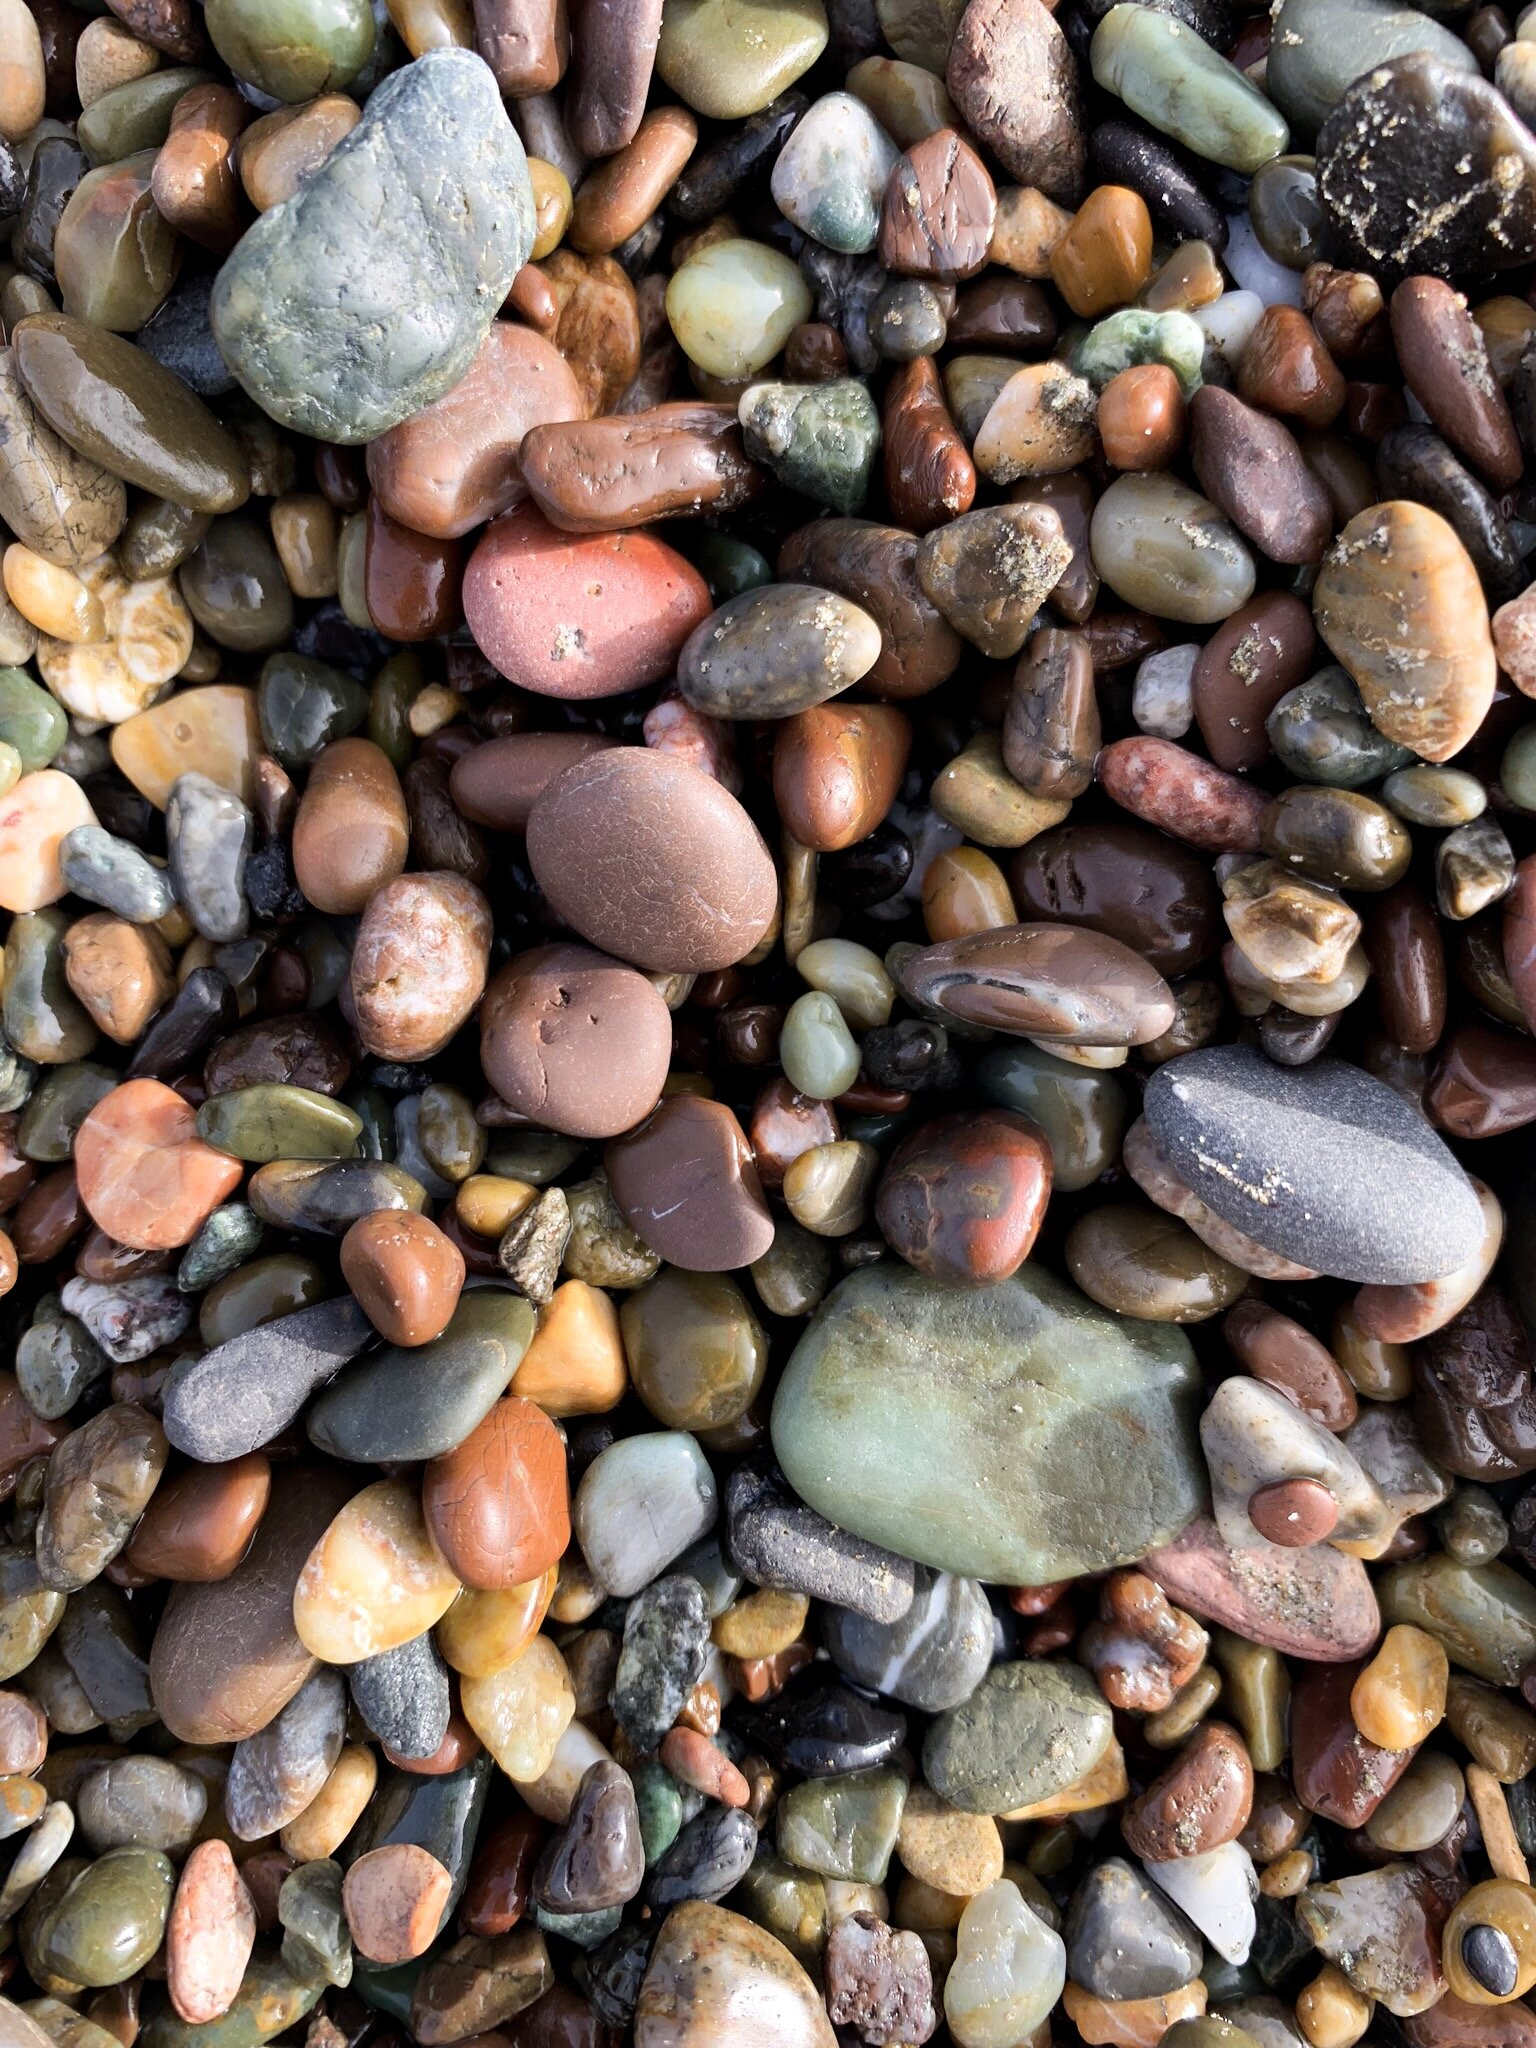 Moonstone Beach tumbled rocks and stones – moonstones, jade, jasper, and more.